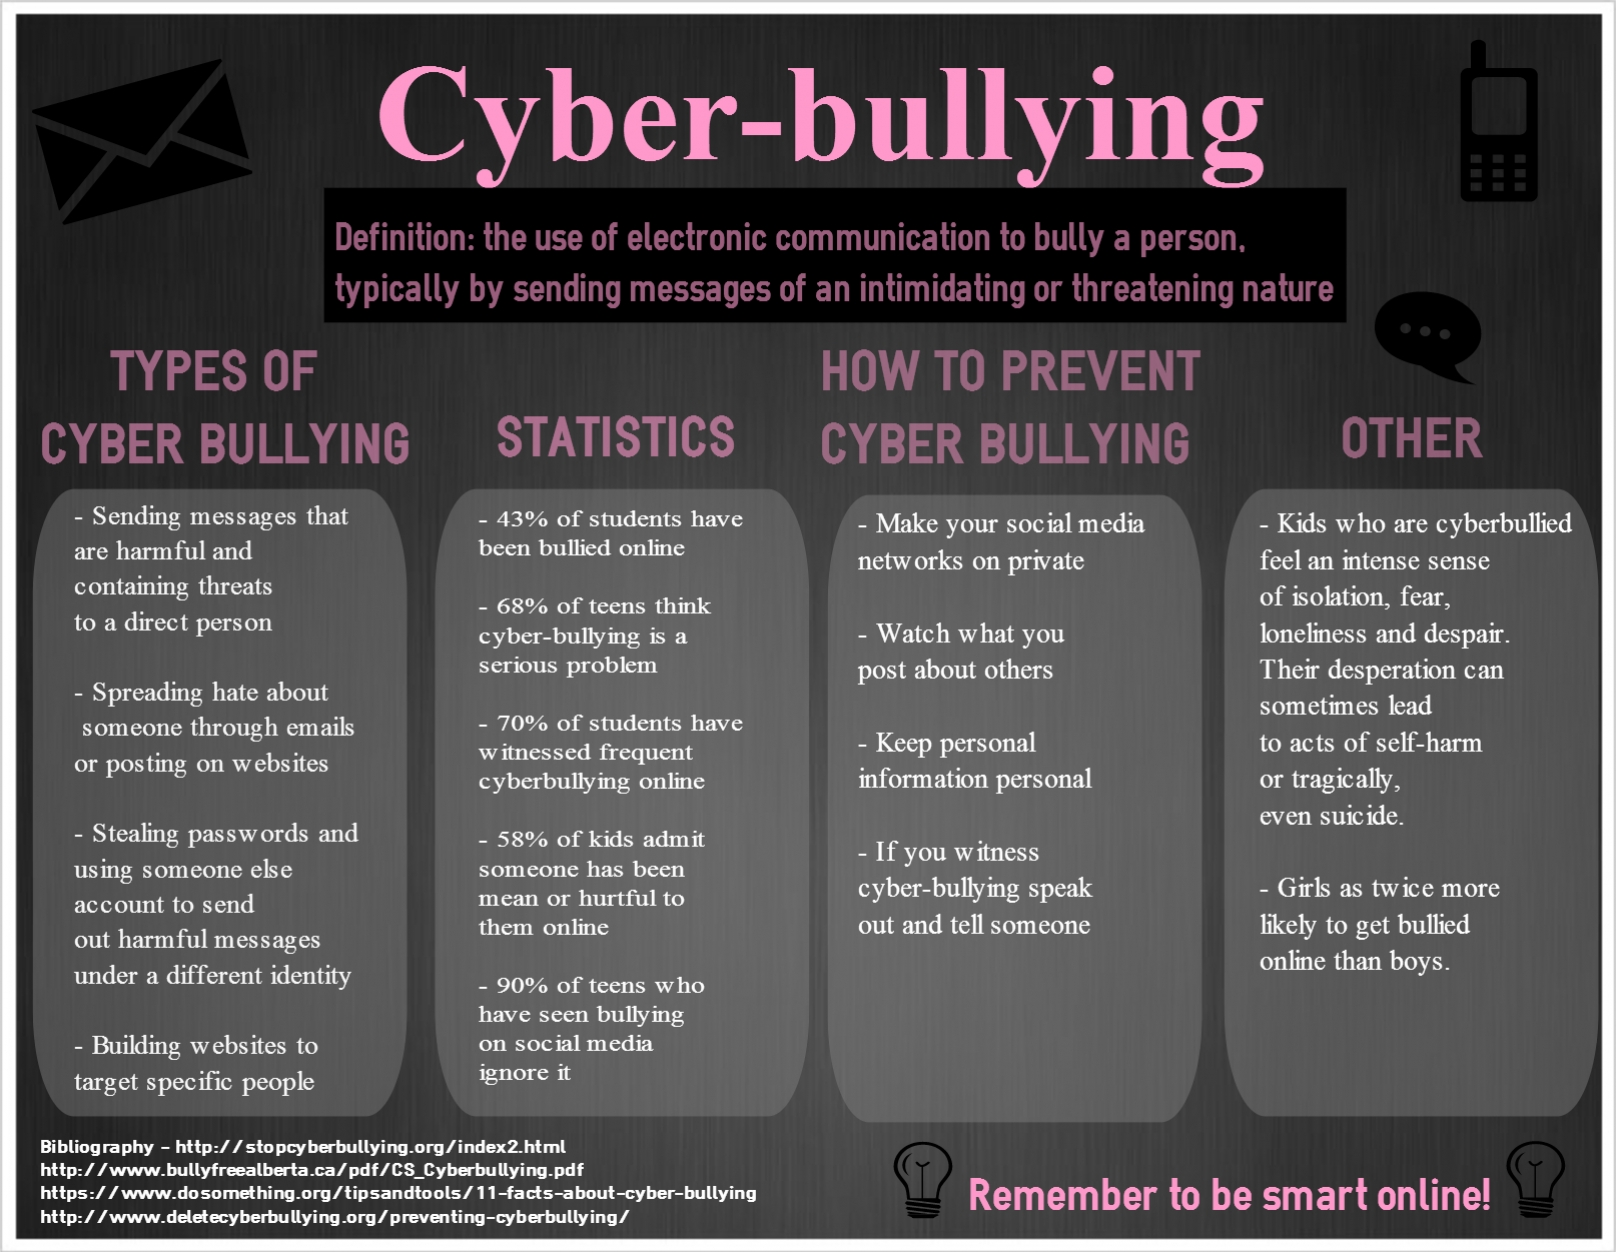 thesis statements on cyber bullying We feature thesis statements, outlines, and lists of sources for finding information the title of the web page is cyber bullying: information and resources.